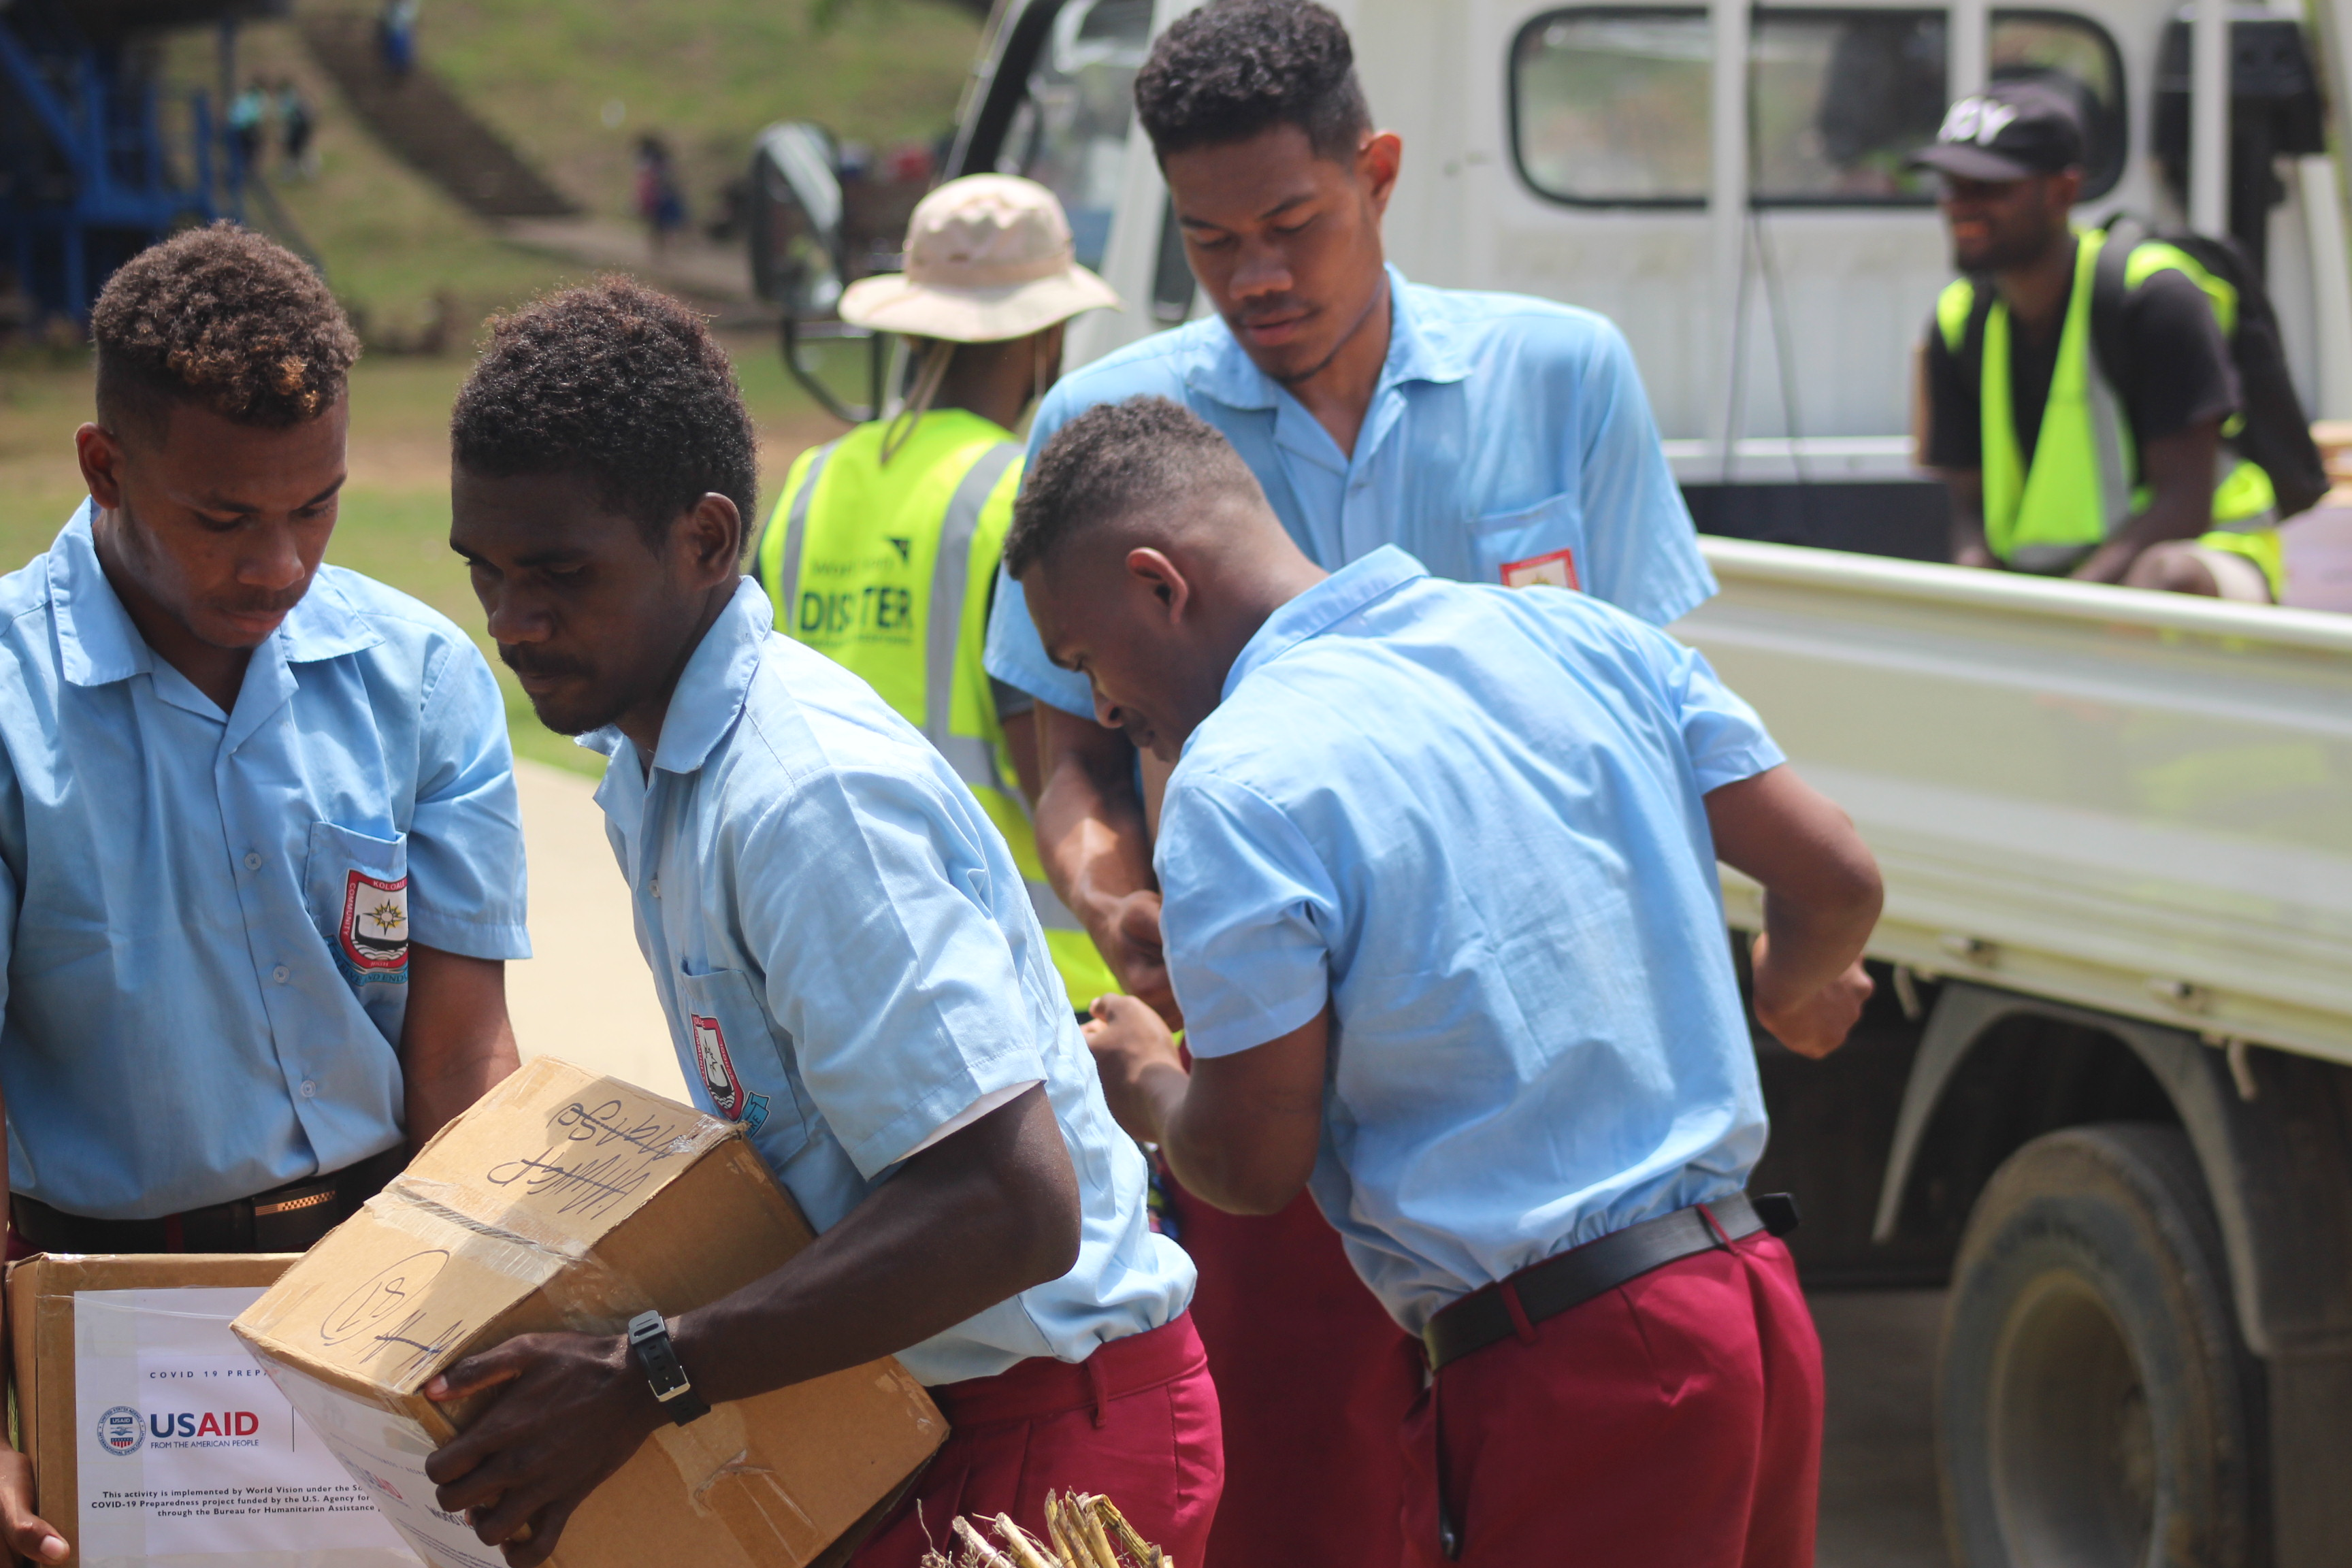 Koloale Community High School Students help to unload cartons of soaps from truck.